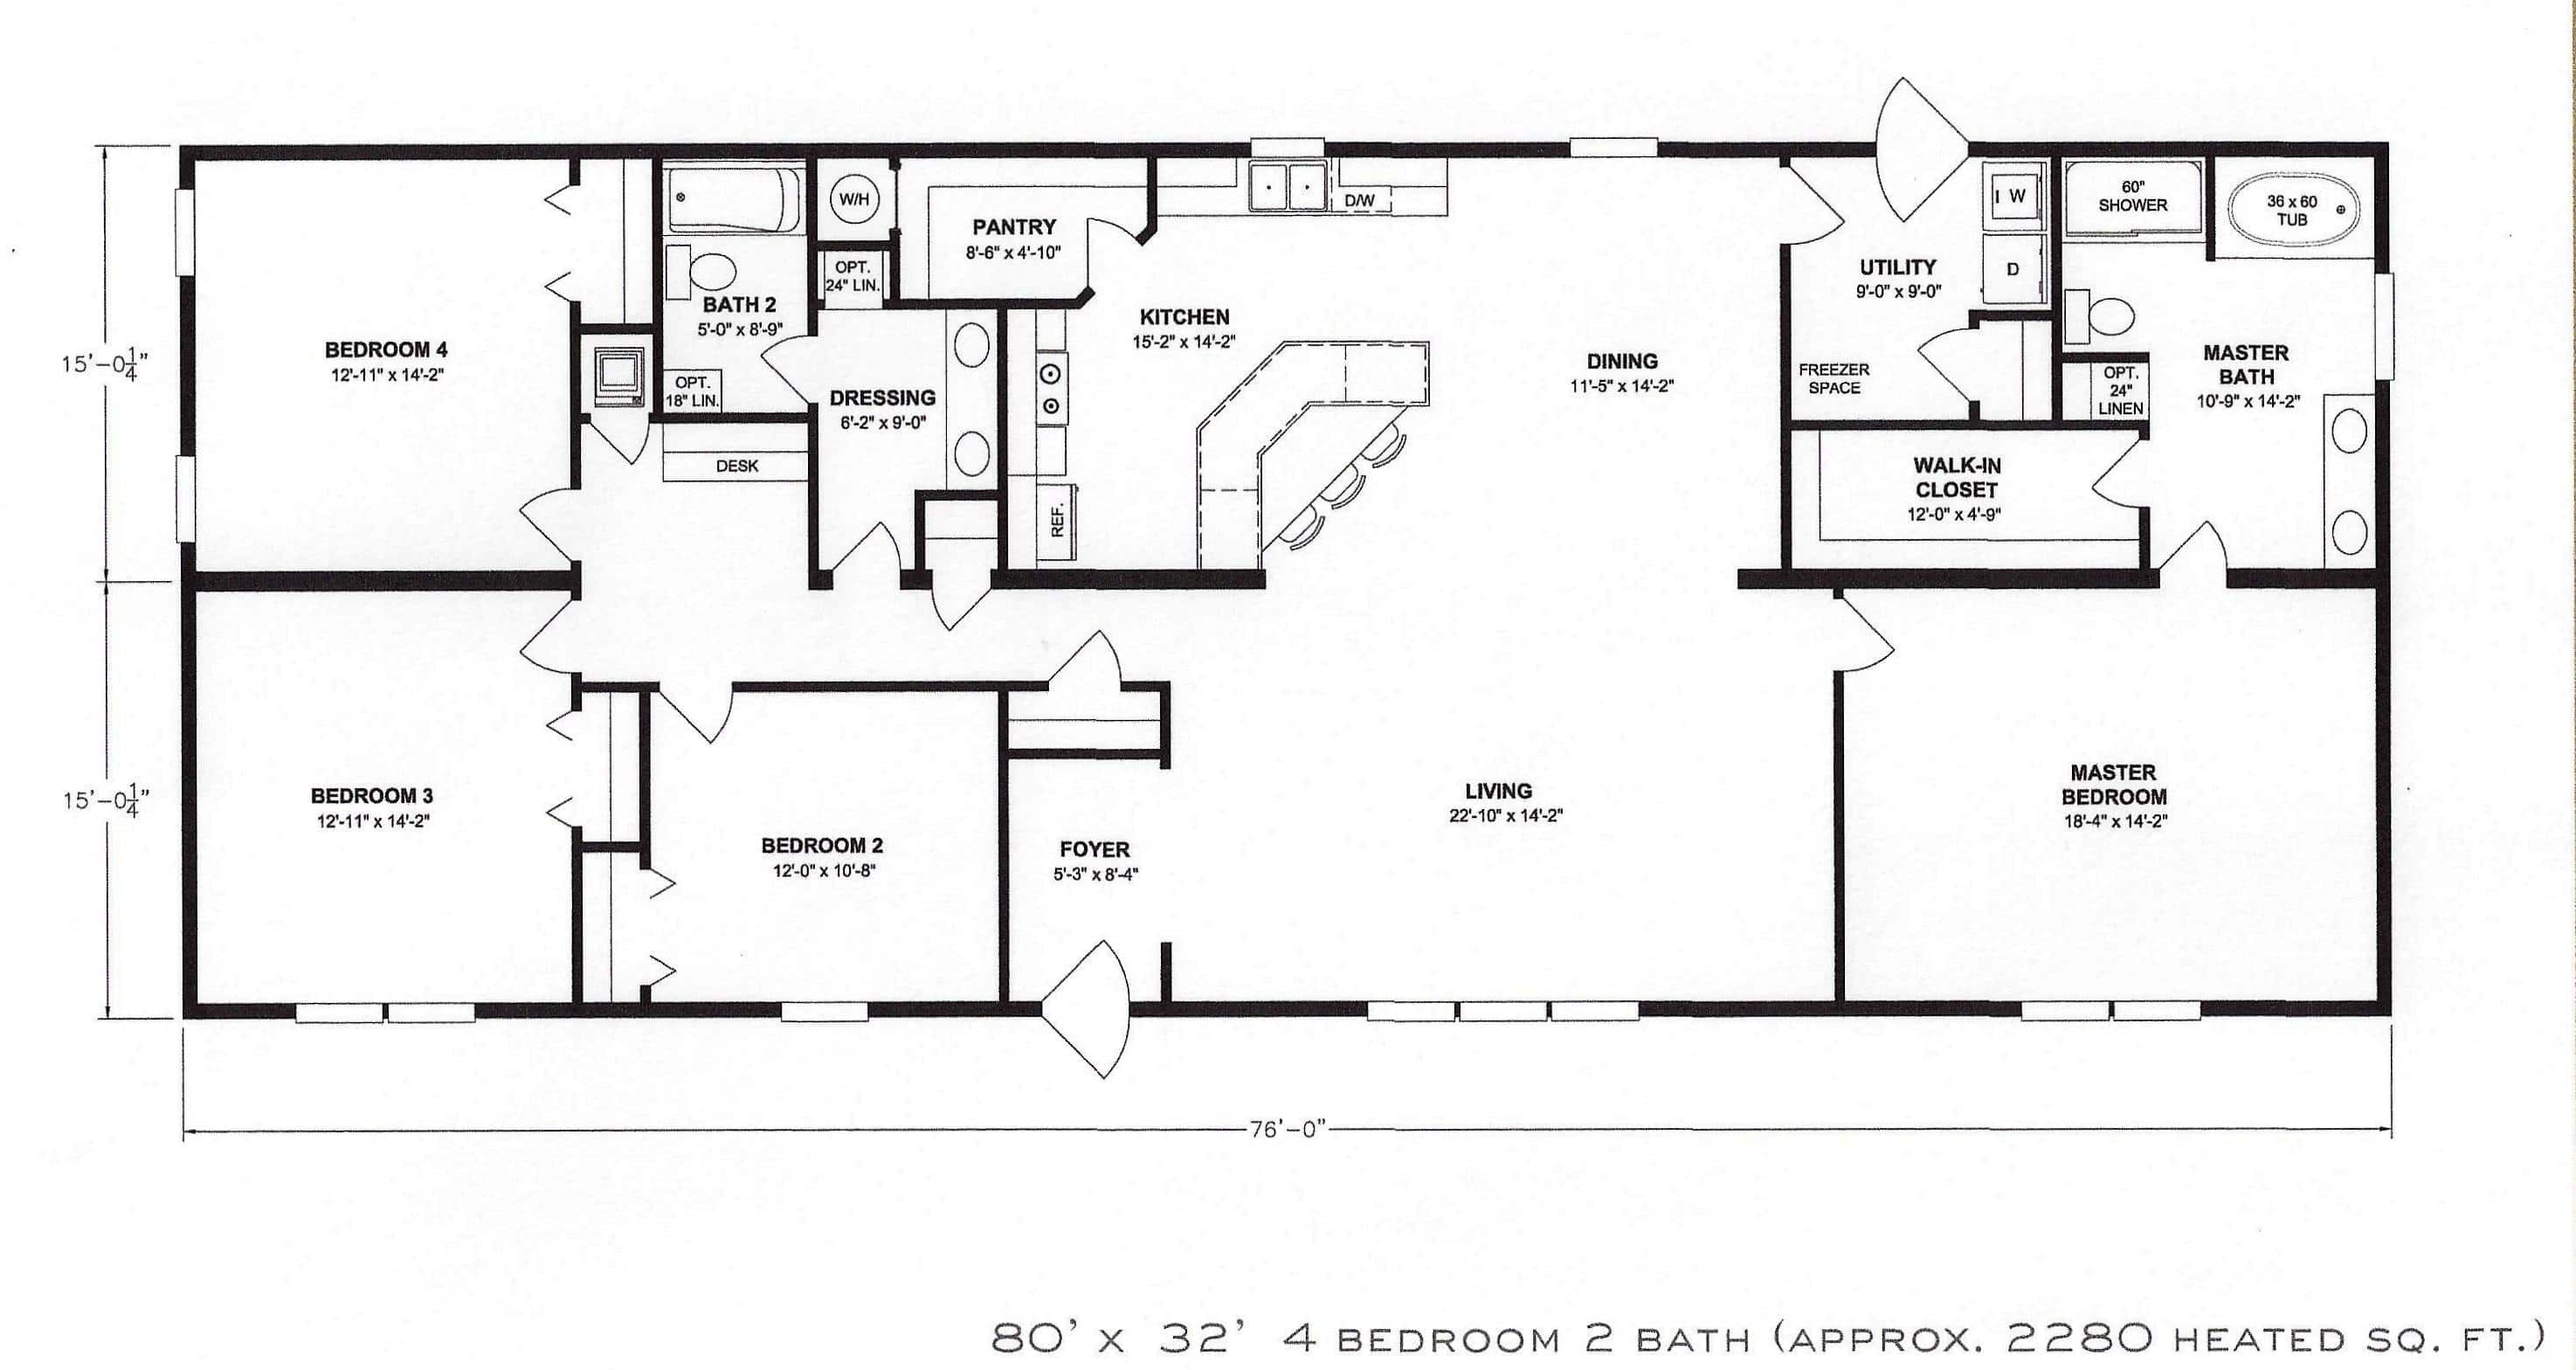 4 Bedroom Floor Plan: F-1001 - Hawks Homes | Manufactured ...